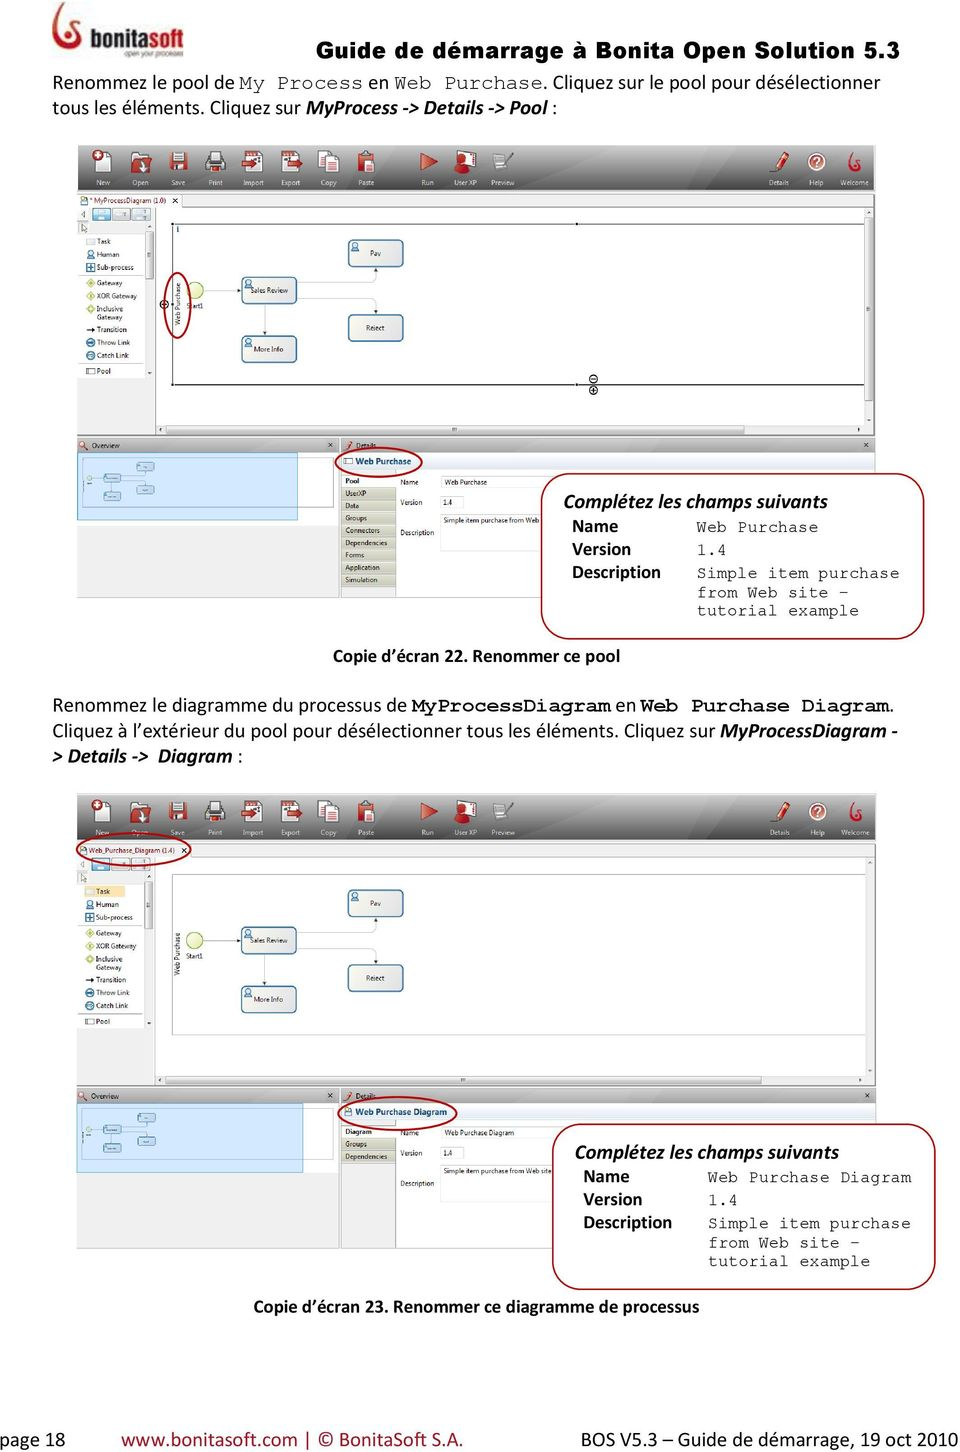 4 Description Simple item purchase from Web site tutorial example Renommez le diagramme du processus de MyProcessDiagram en Web Purchase Diagram.